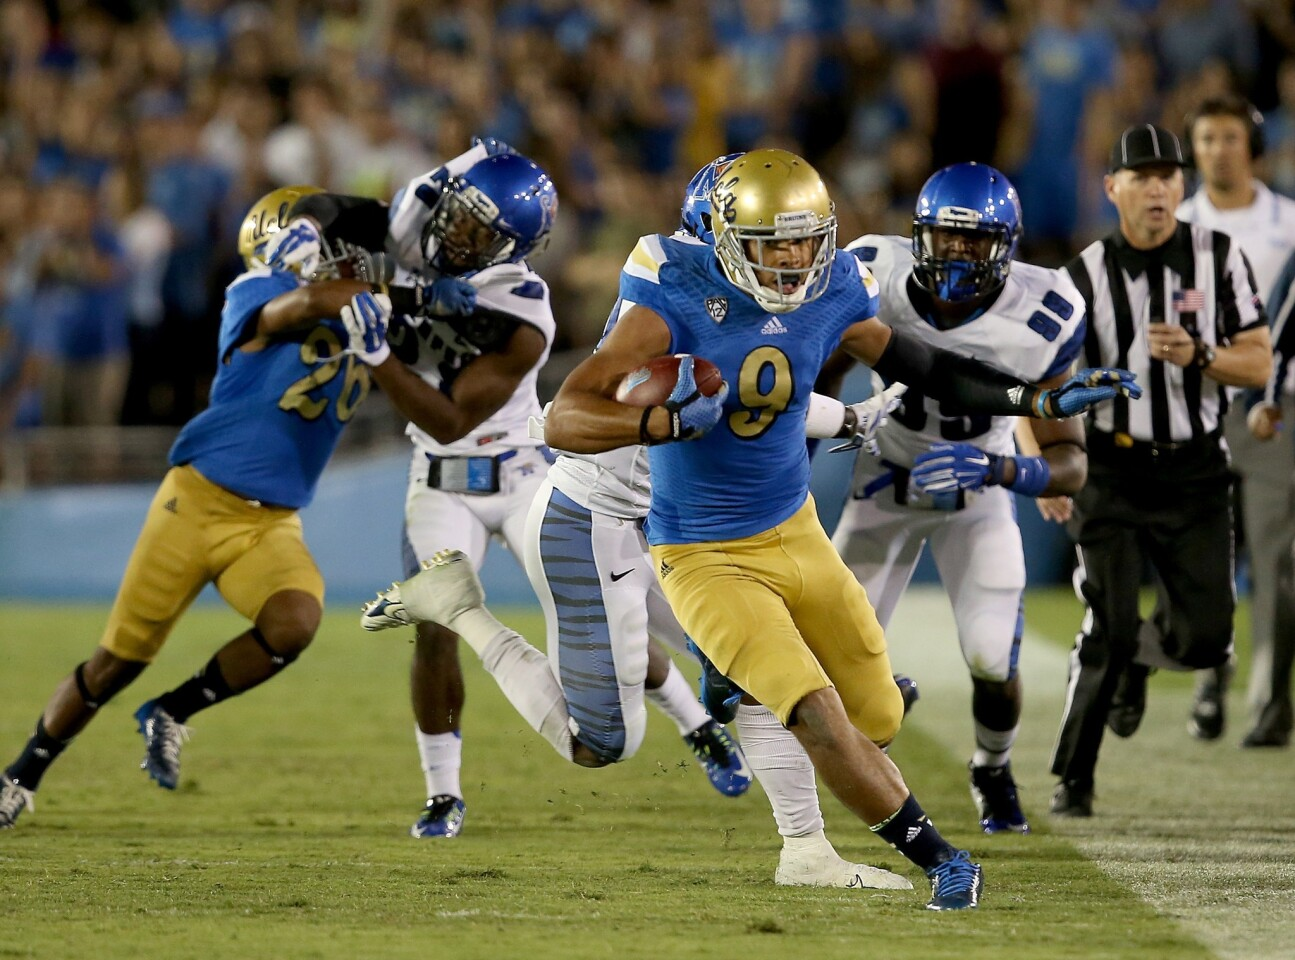 UCLA receiver Jordan Payton finds running room along the sideline after making a catch against Memphis in the third quarter Saturday at the Rose Bowl.